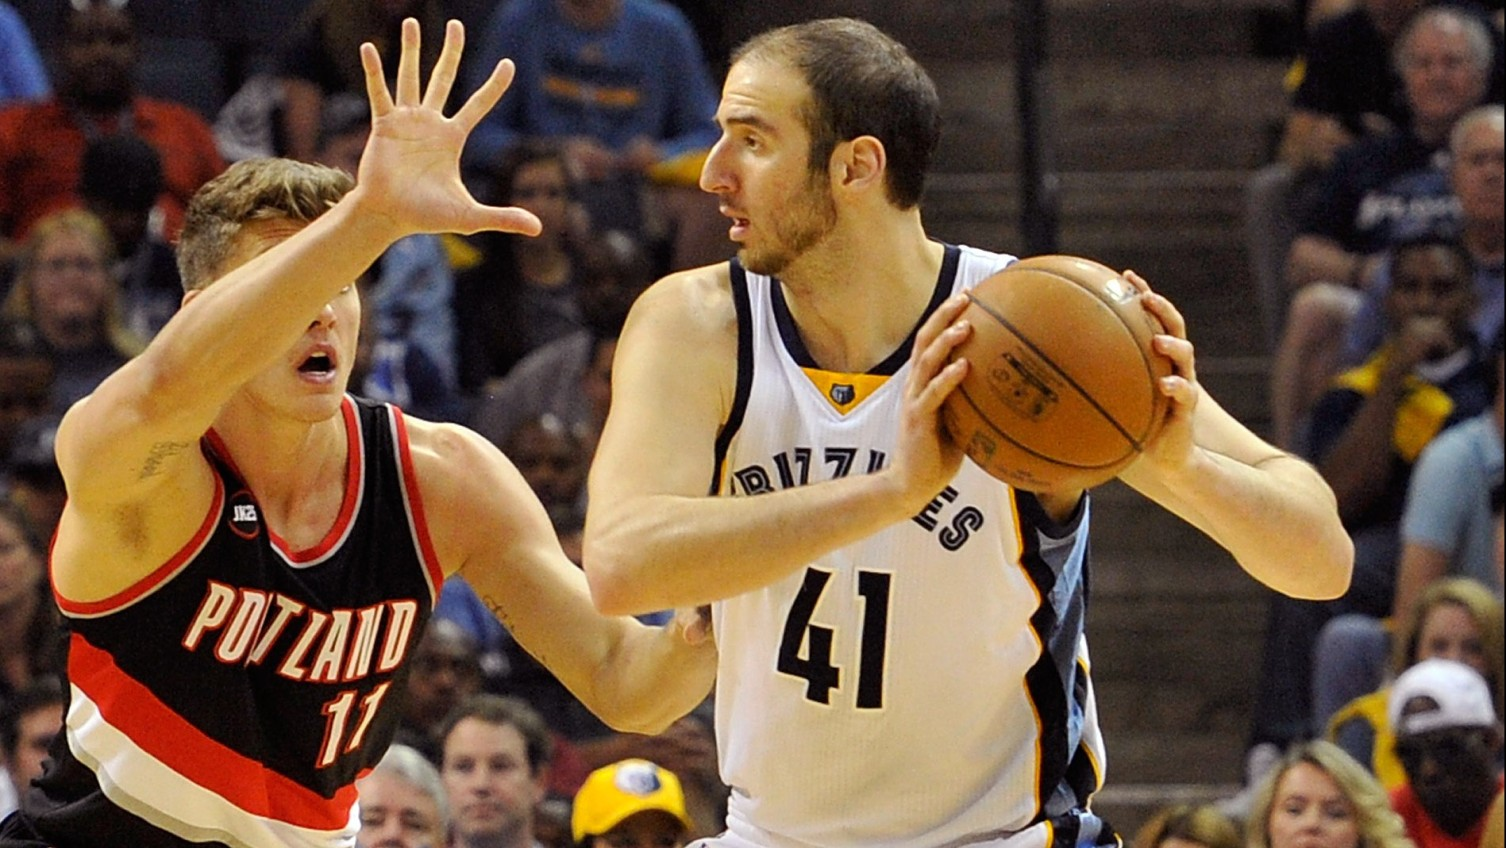 Kosta Koufos pumped to play for George Karl in Sacramento